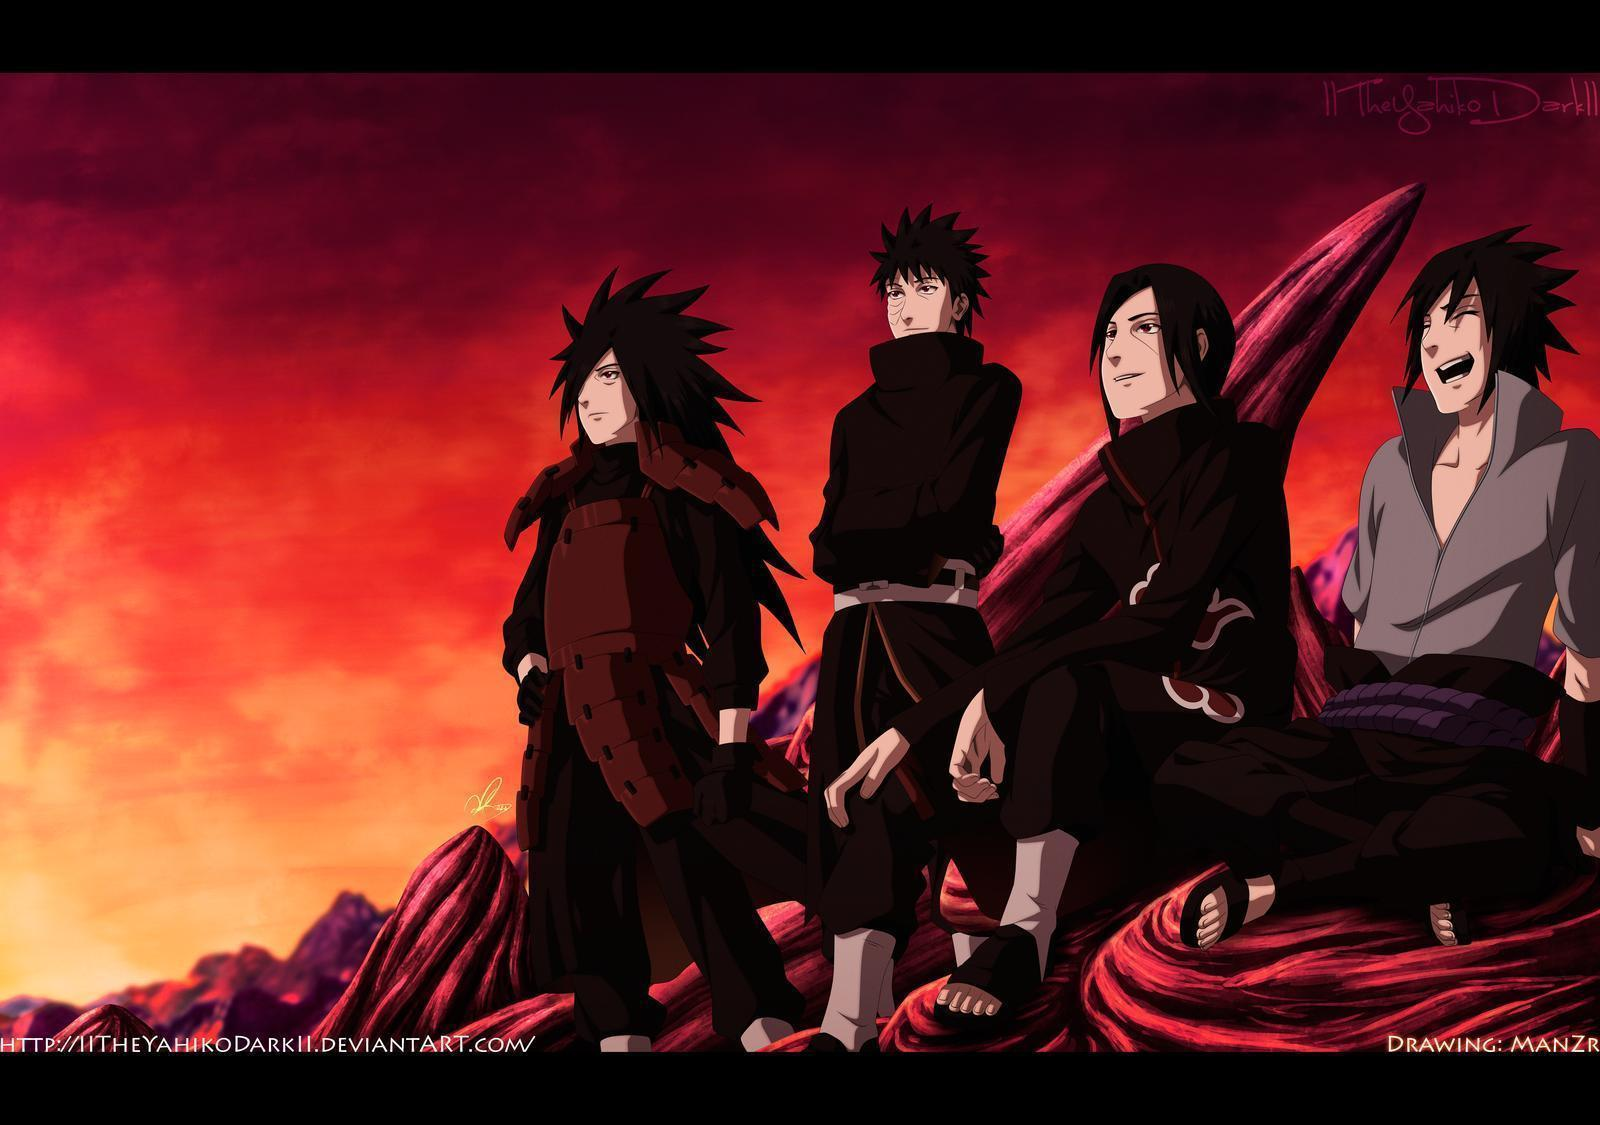 Klan uchiha 2015 wallpapers wallpaper cave - Foto wallpaper ...